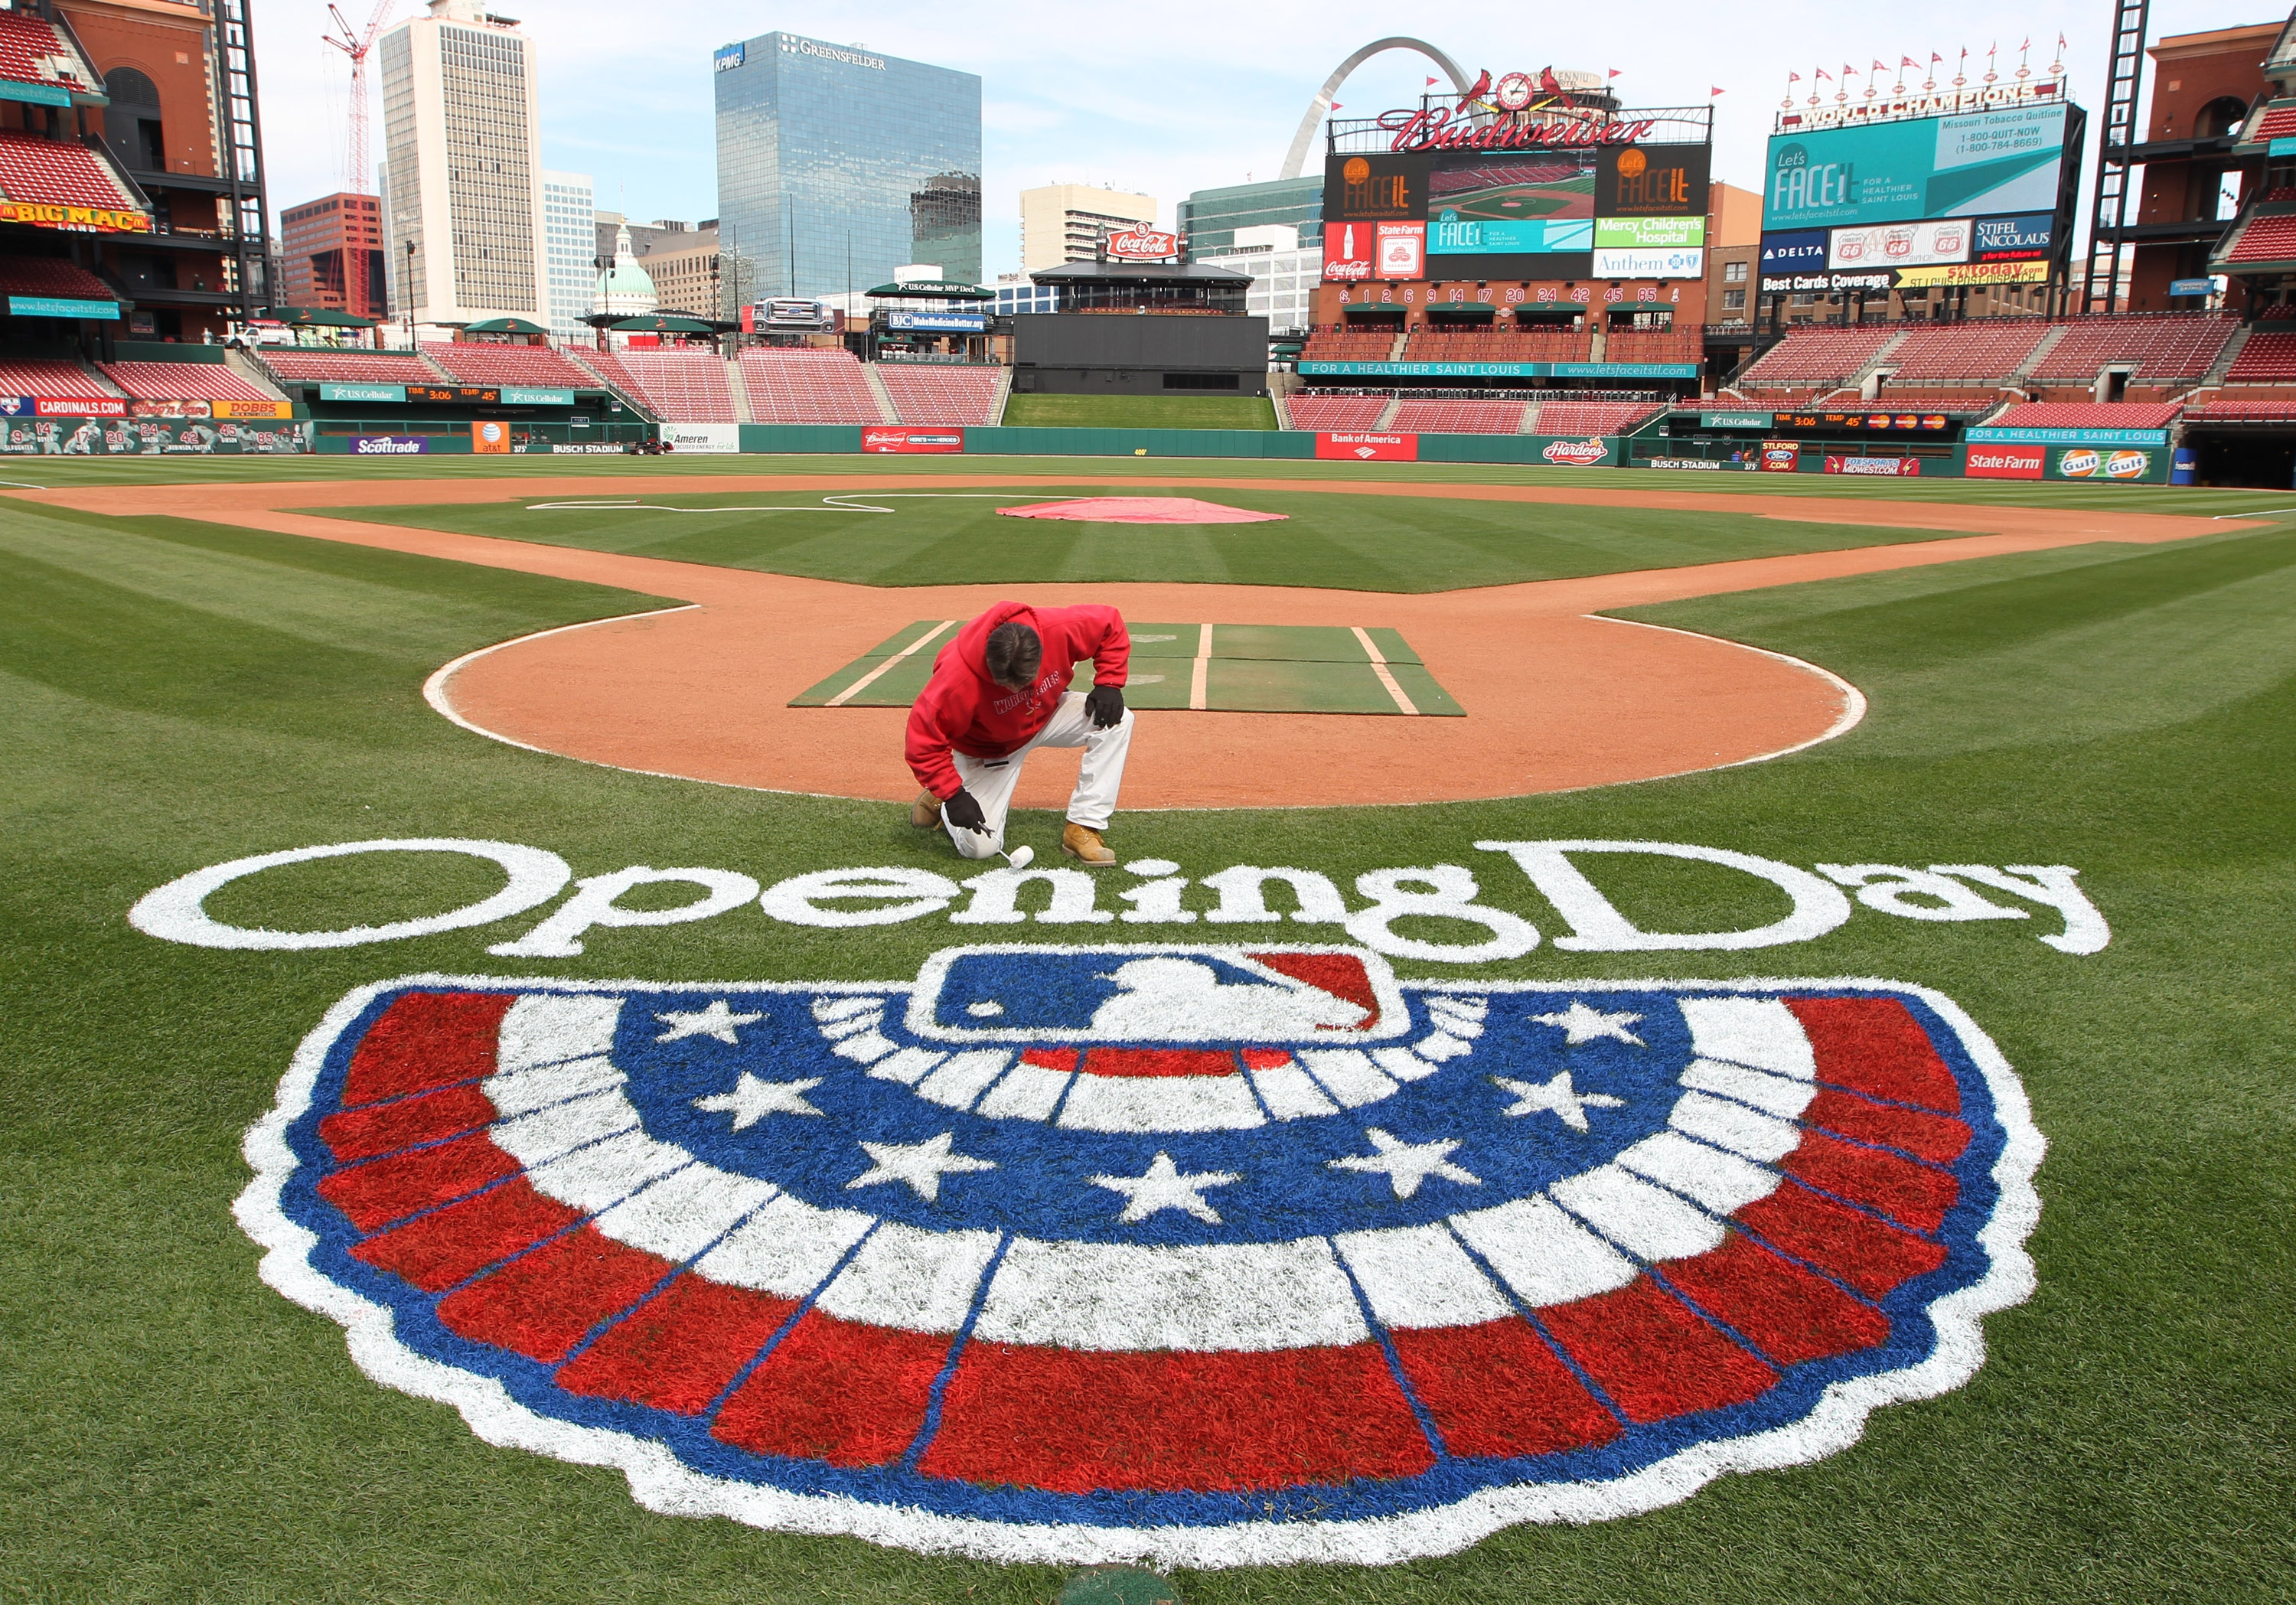 Download the #Royals and #STLCards 2017 schedules